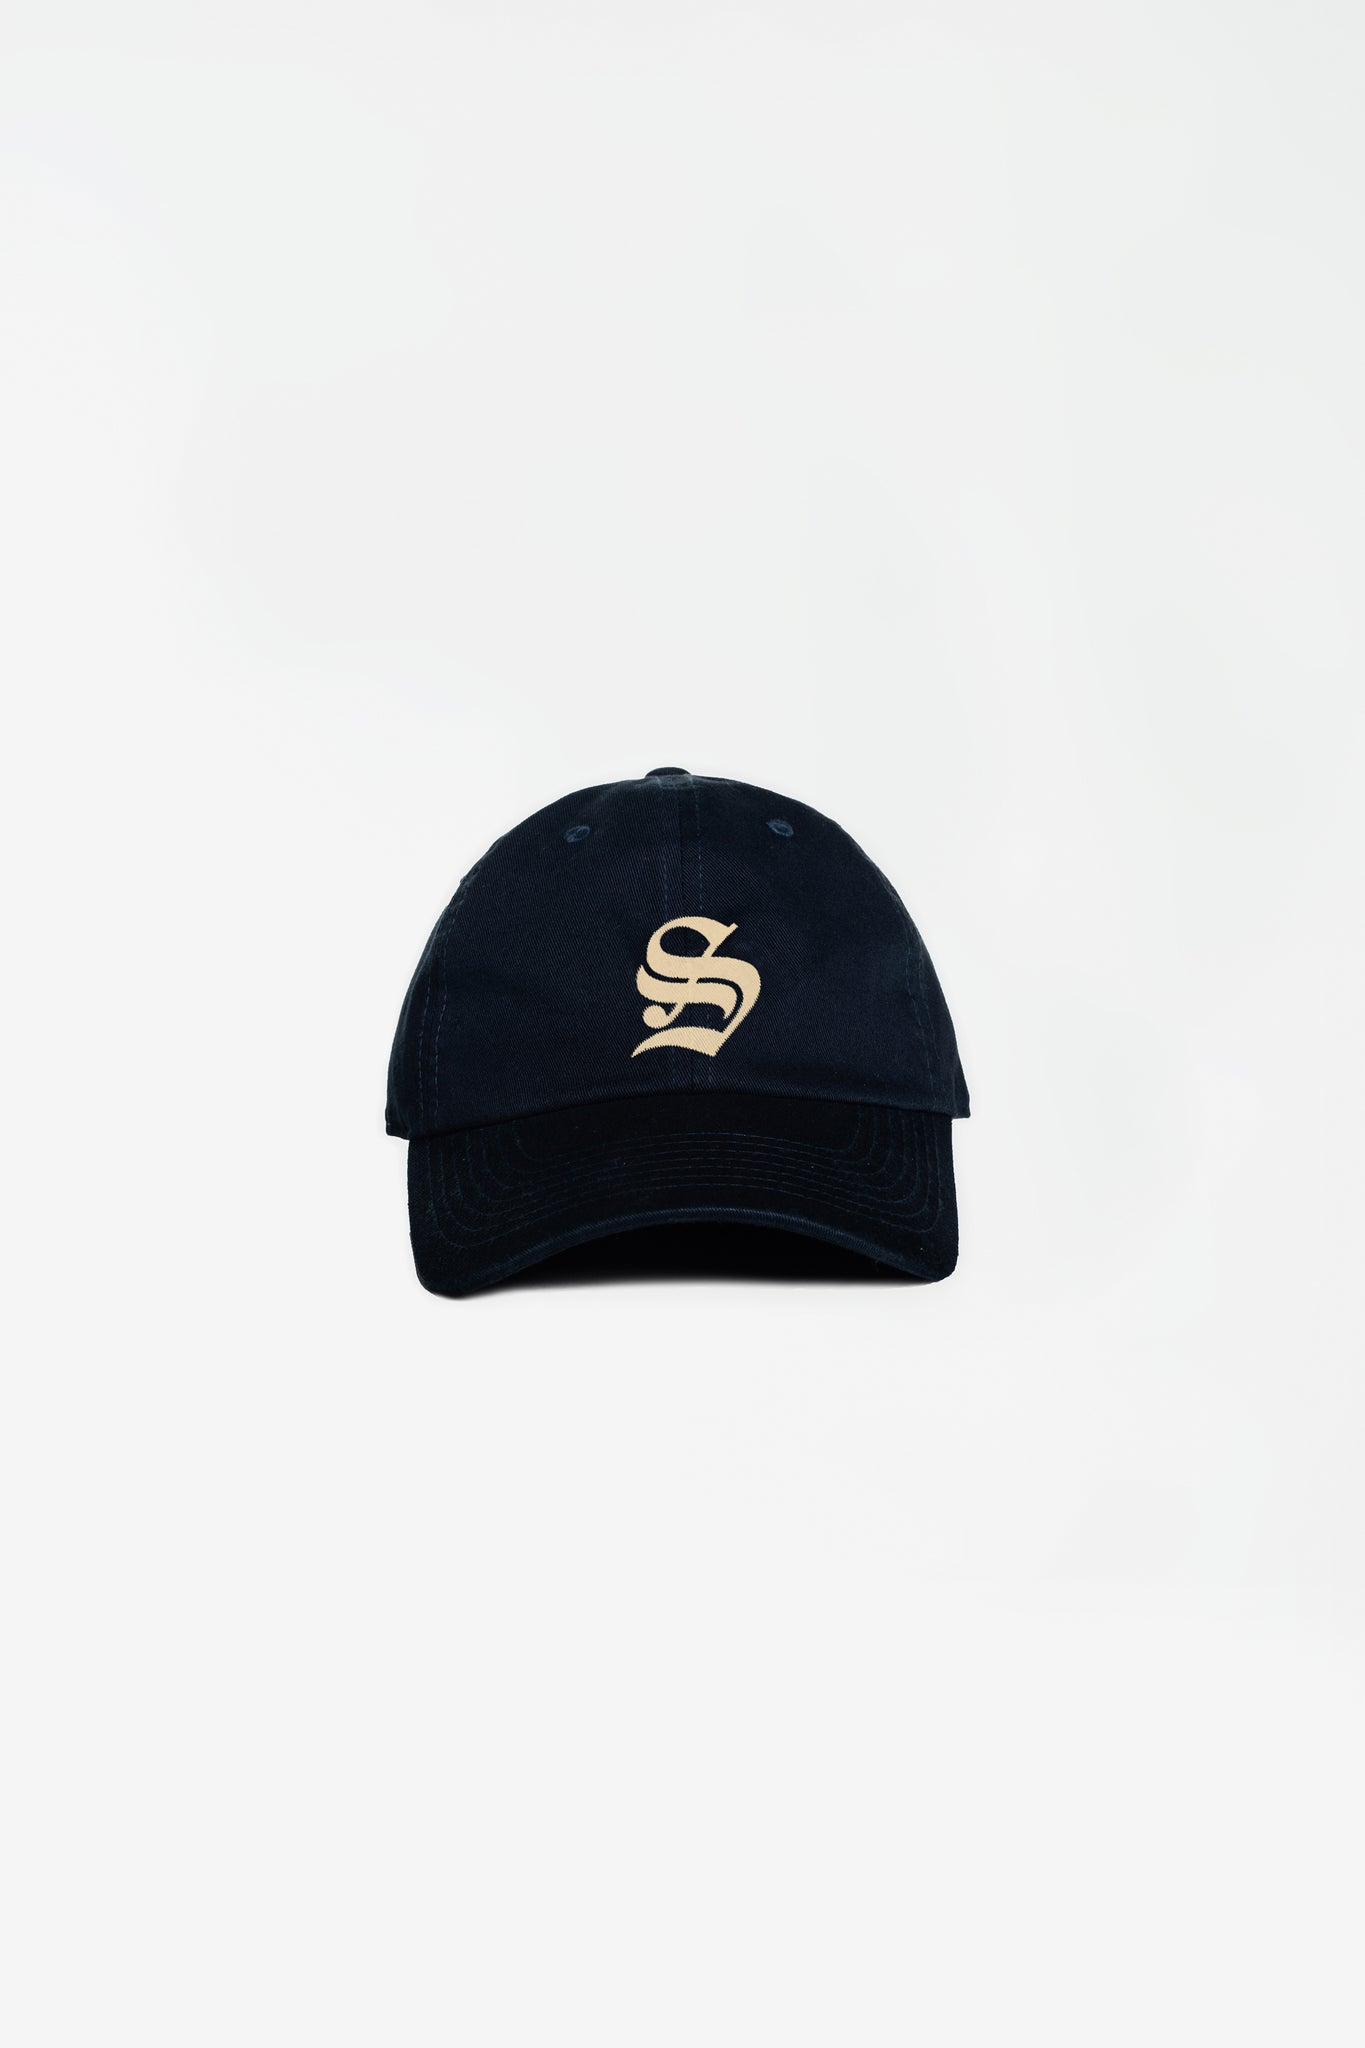 Old English S hat navy/cream embroidery